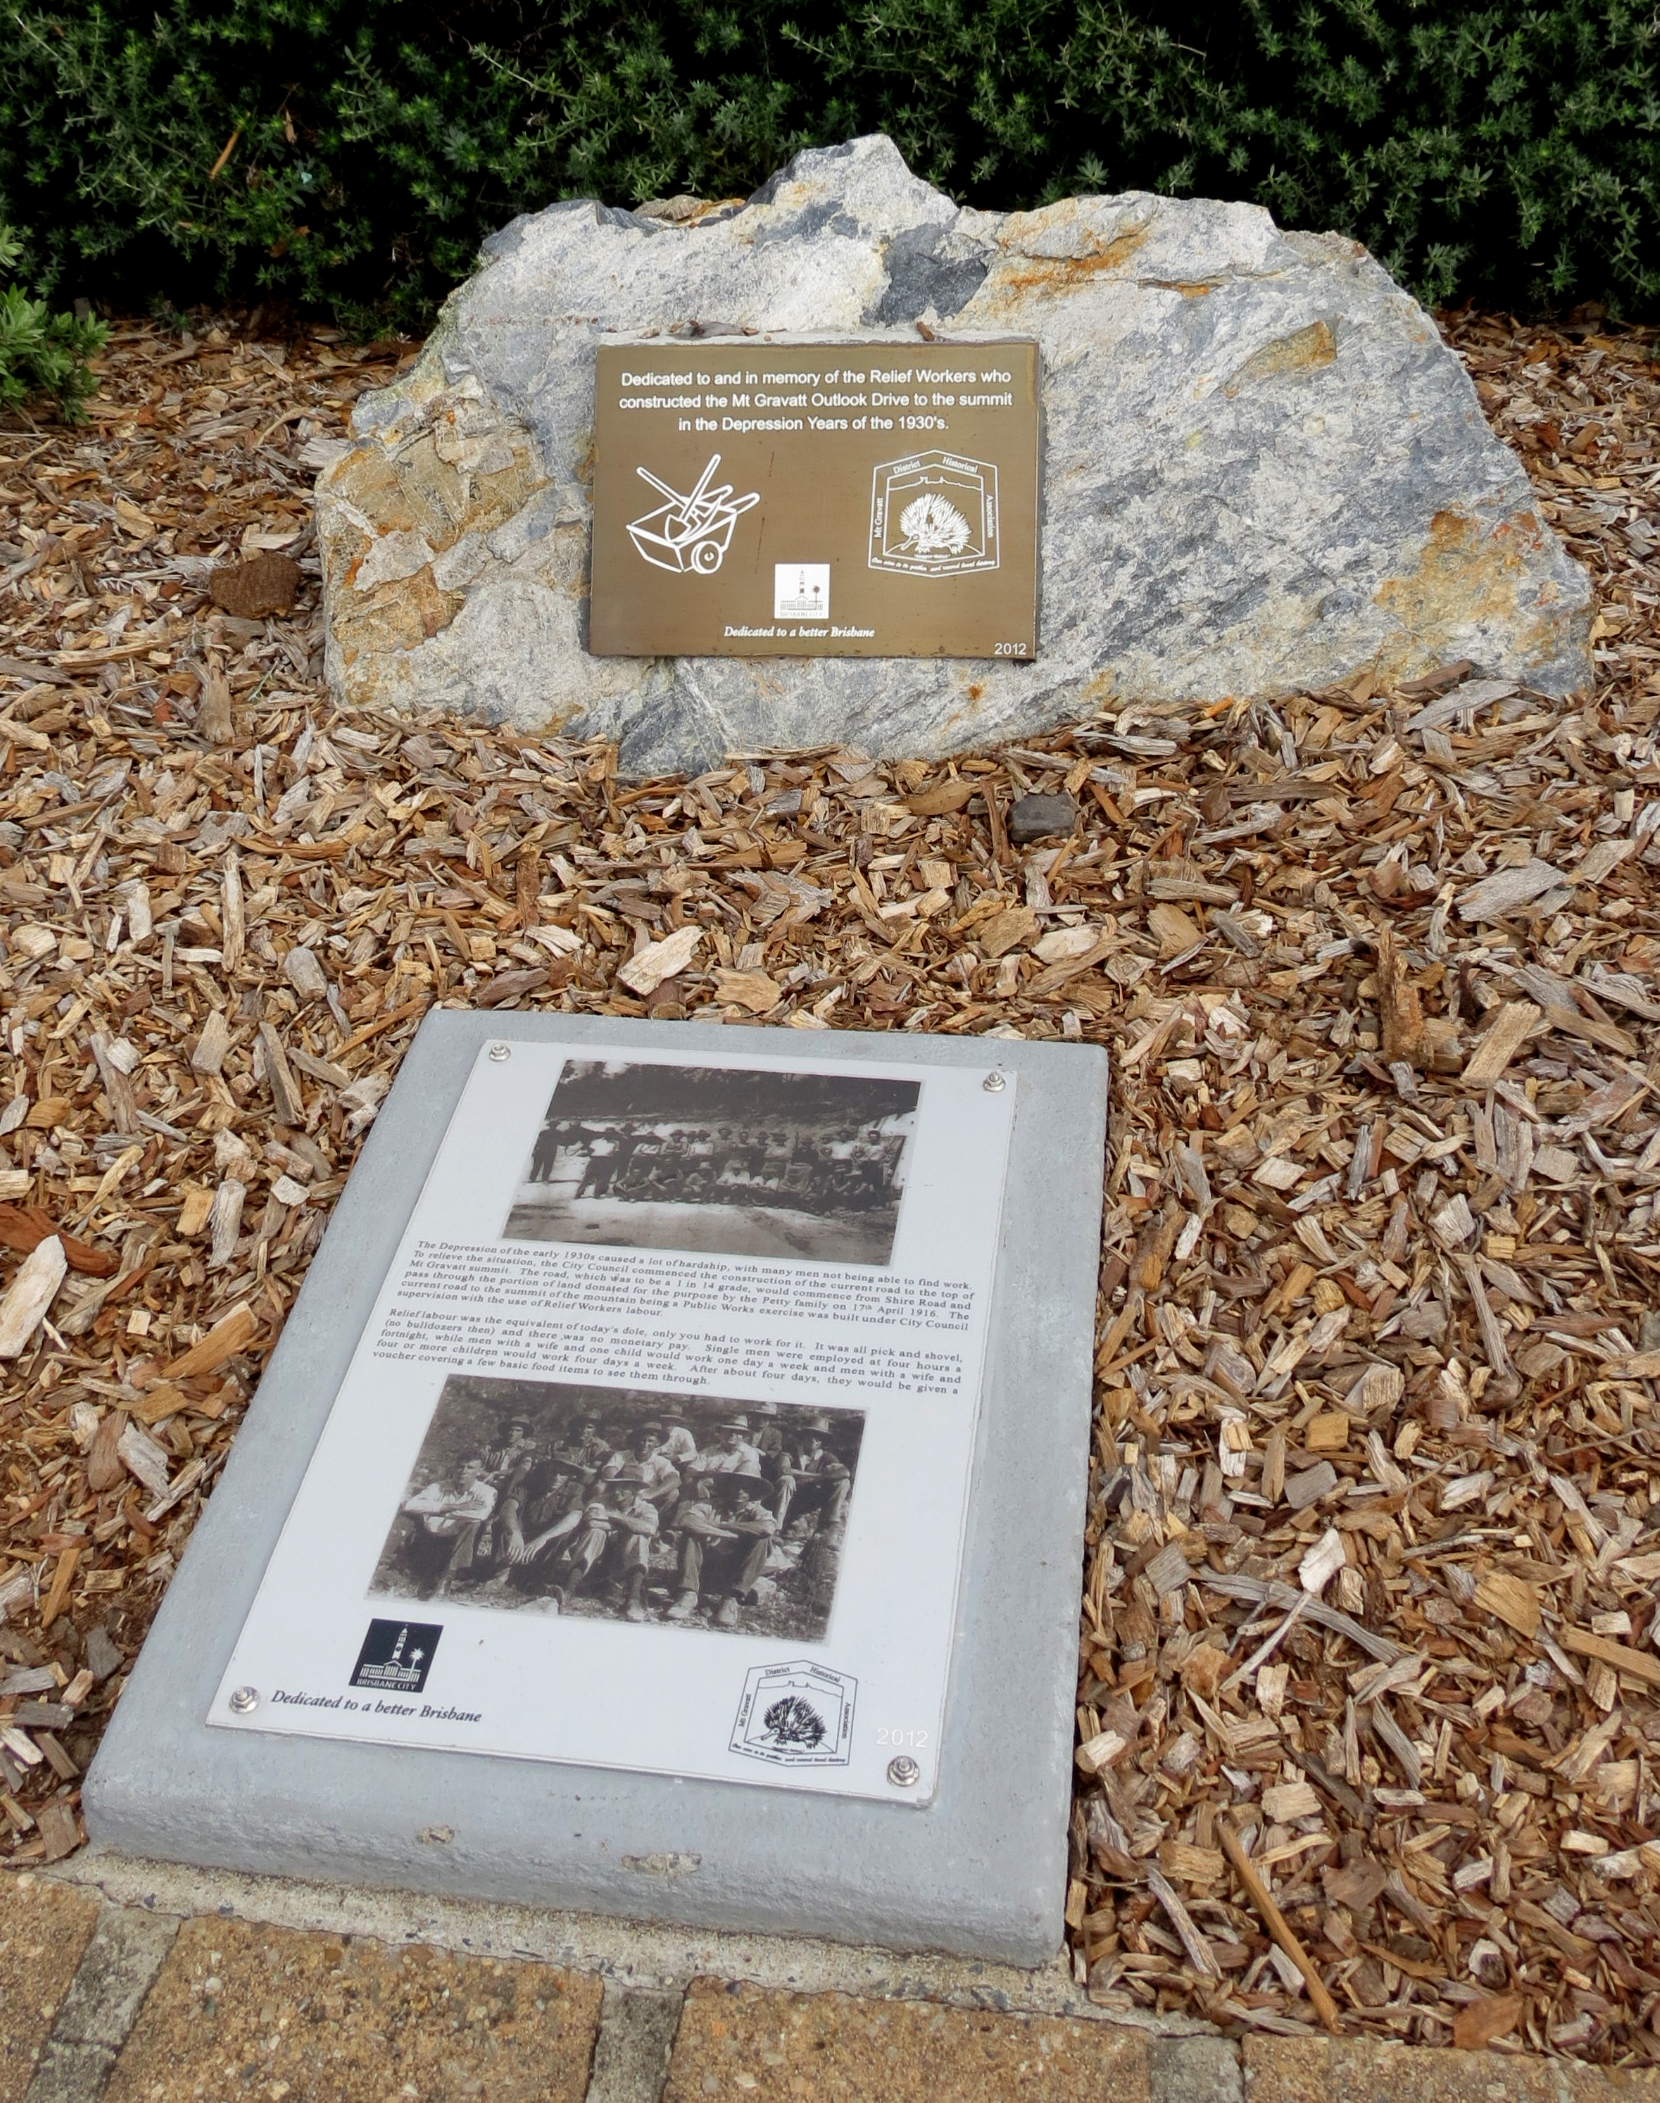 Historical Societ plaque - 10 Feb 2014